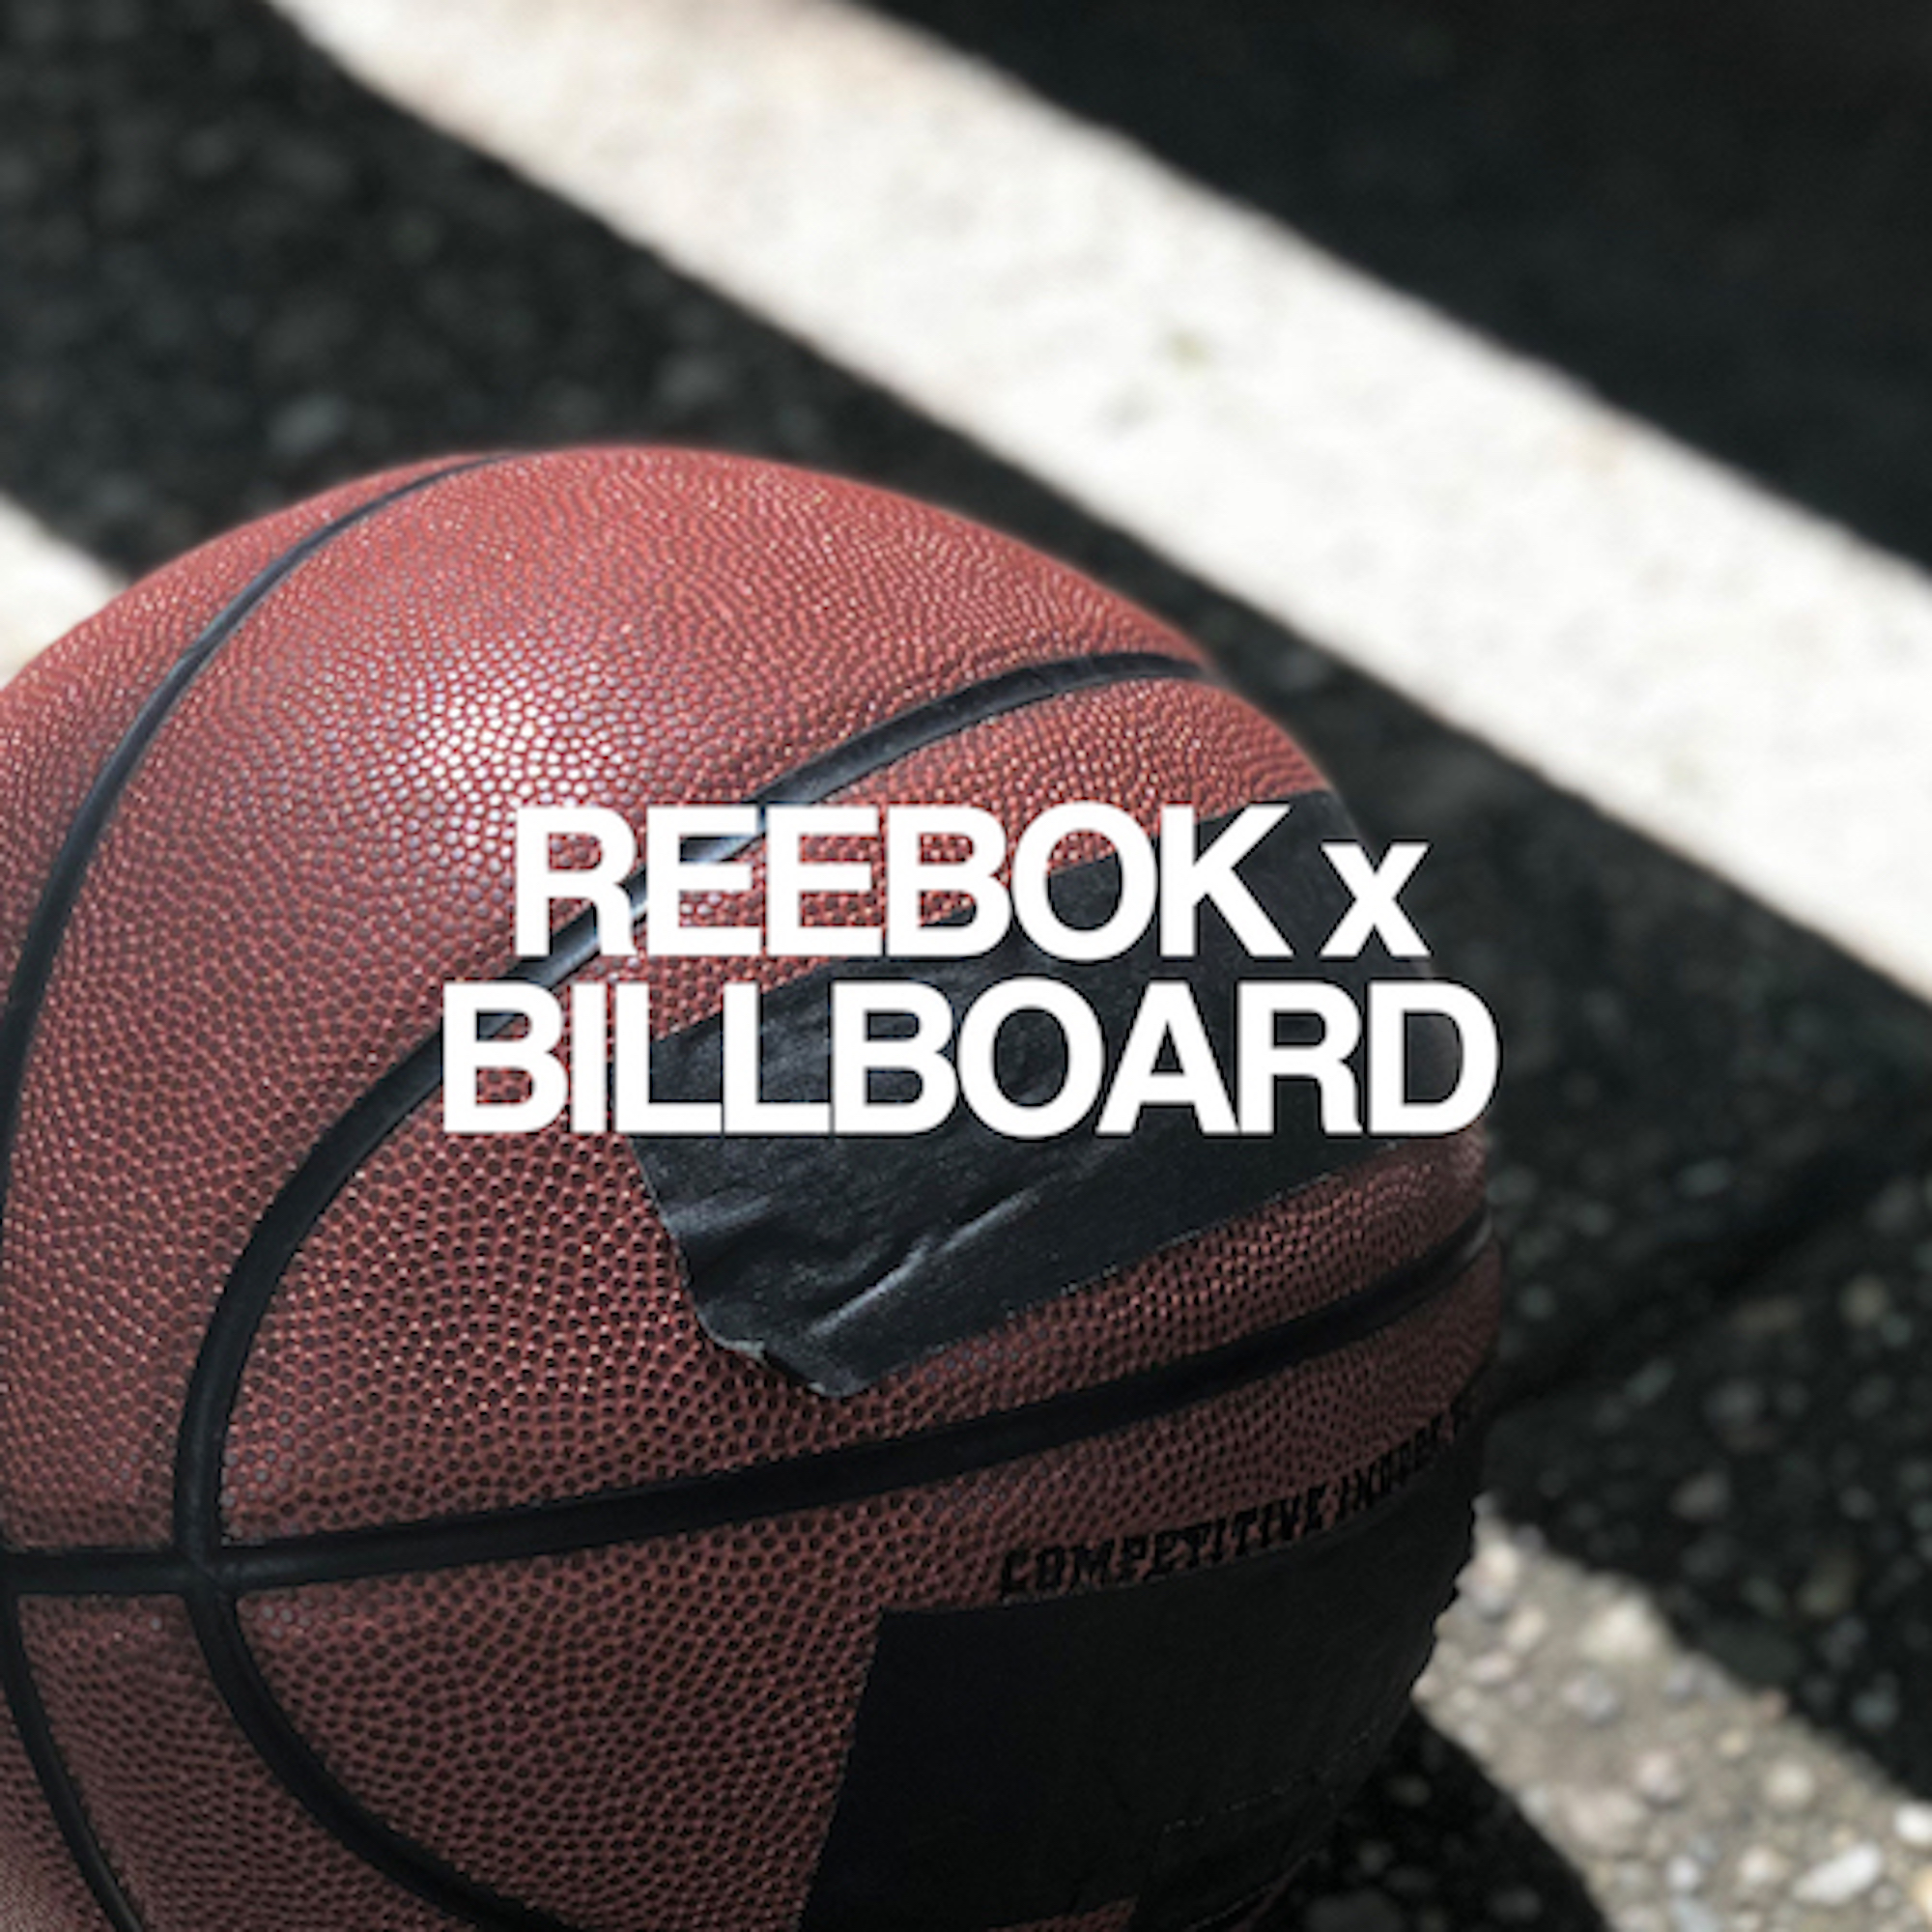 REEBOK x BILLBOARD BUTTON 1.jpg